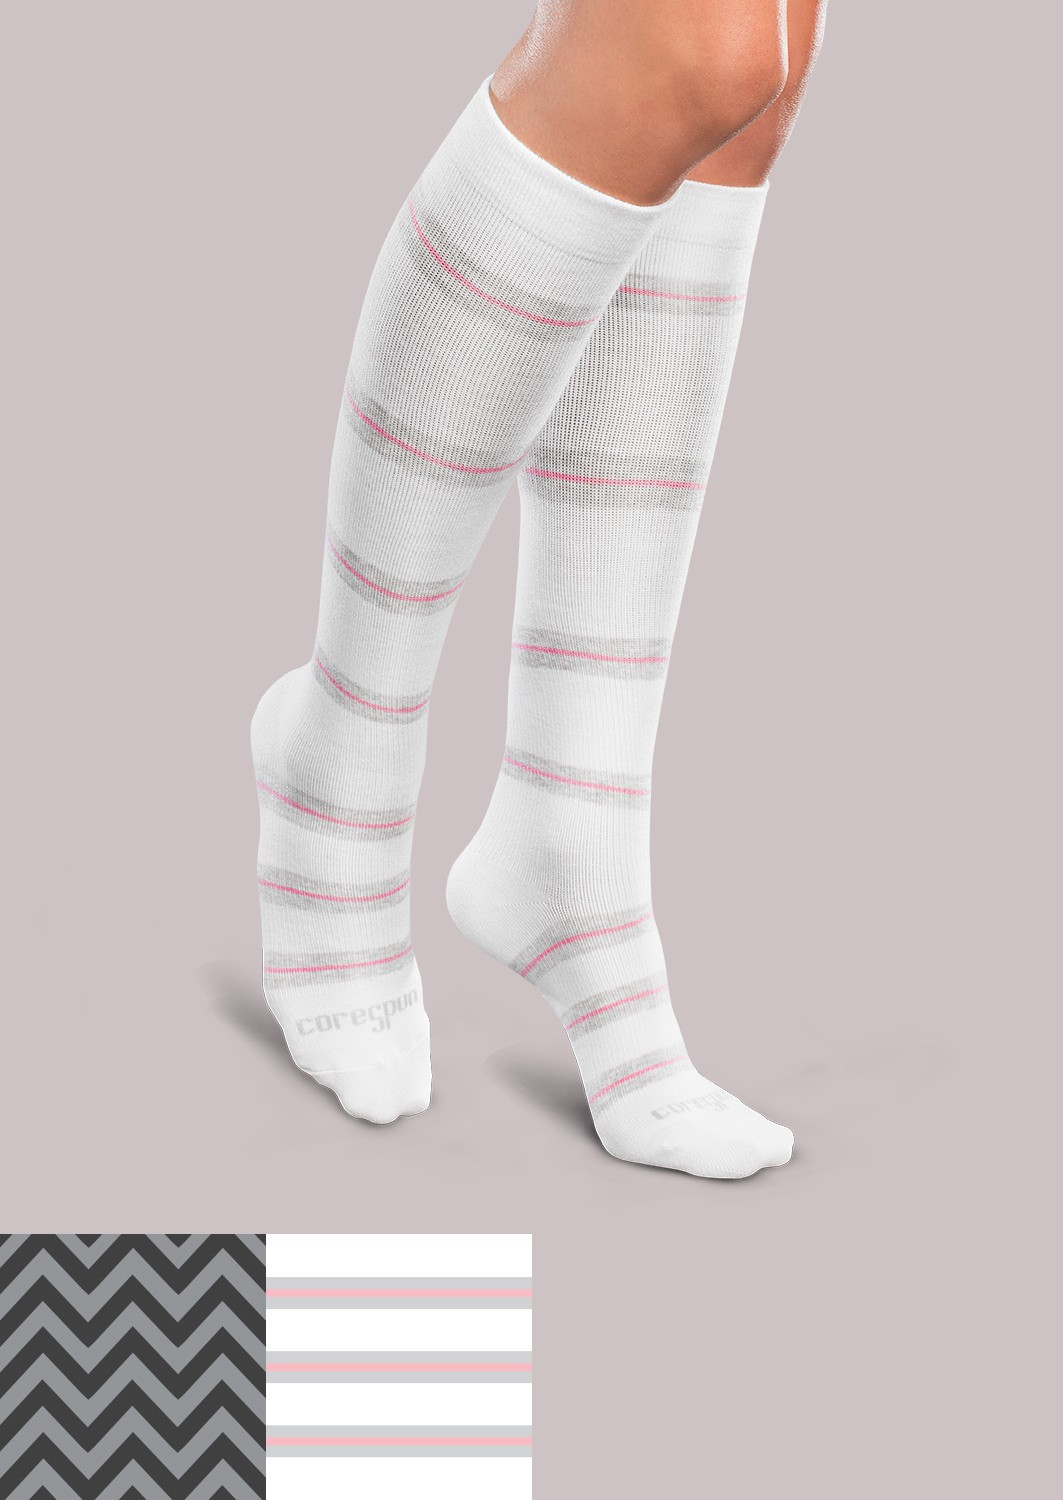 Patterned socks Elegant Light Support socks Patterned Core Spun Of Superb 48 Images Patterned socks